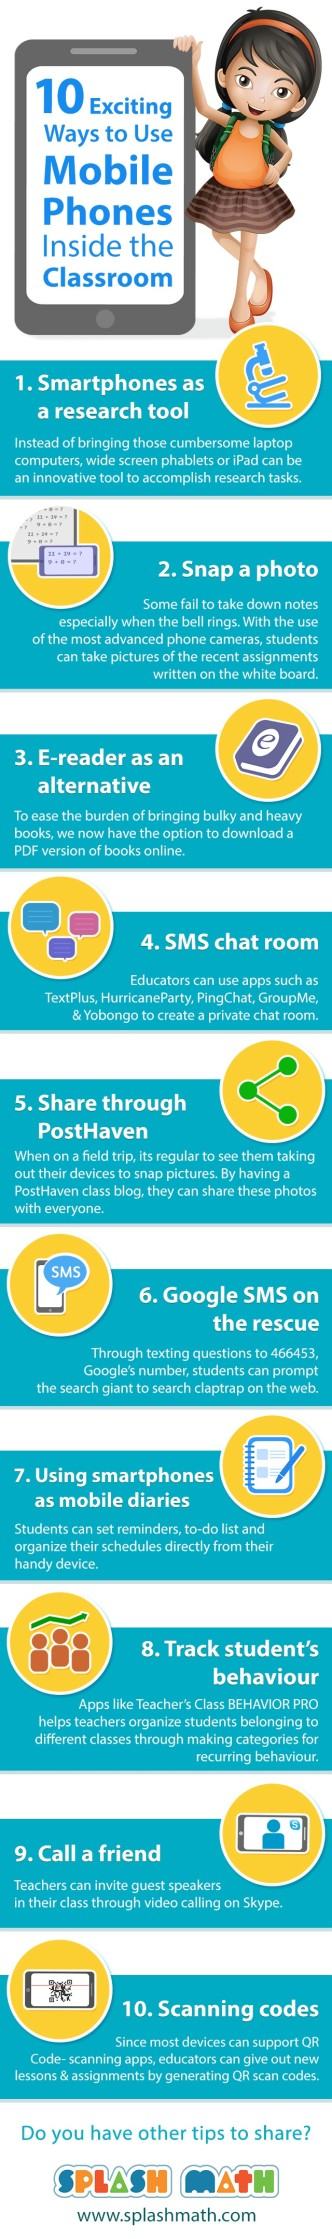 10 ways to use mobile phones in the classroom - infographic